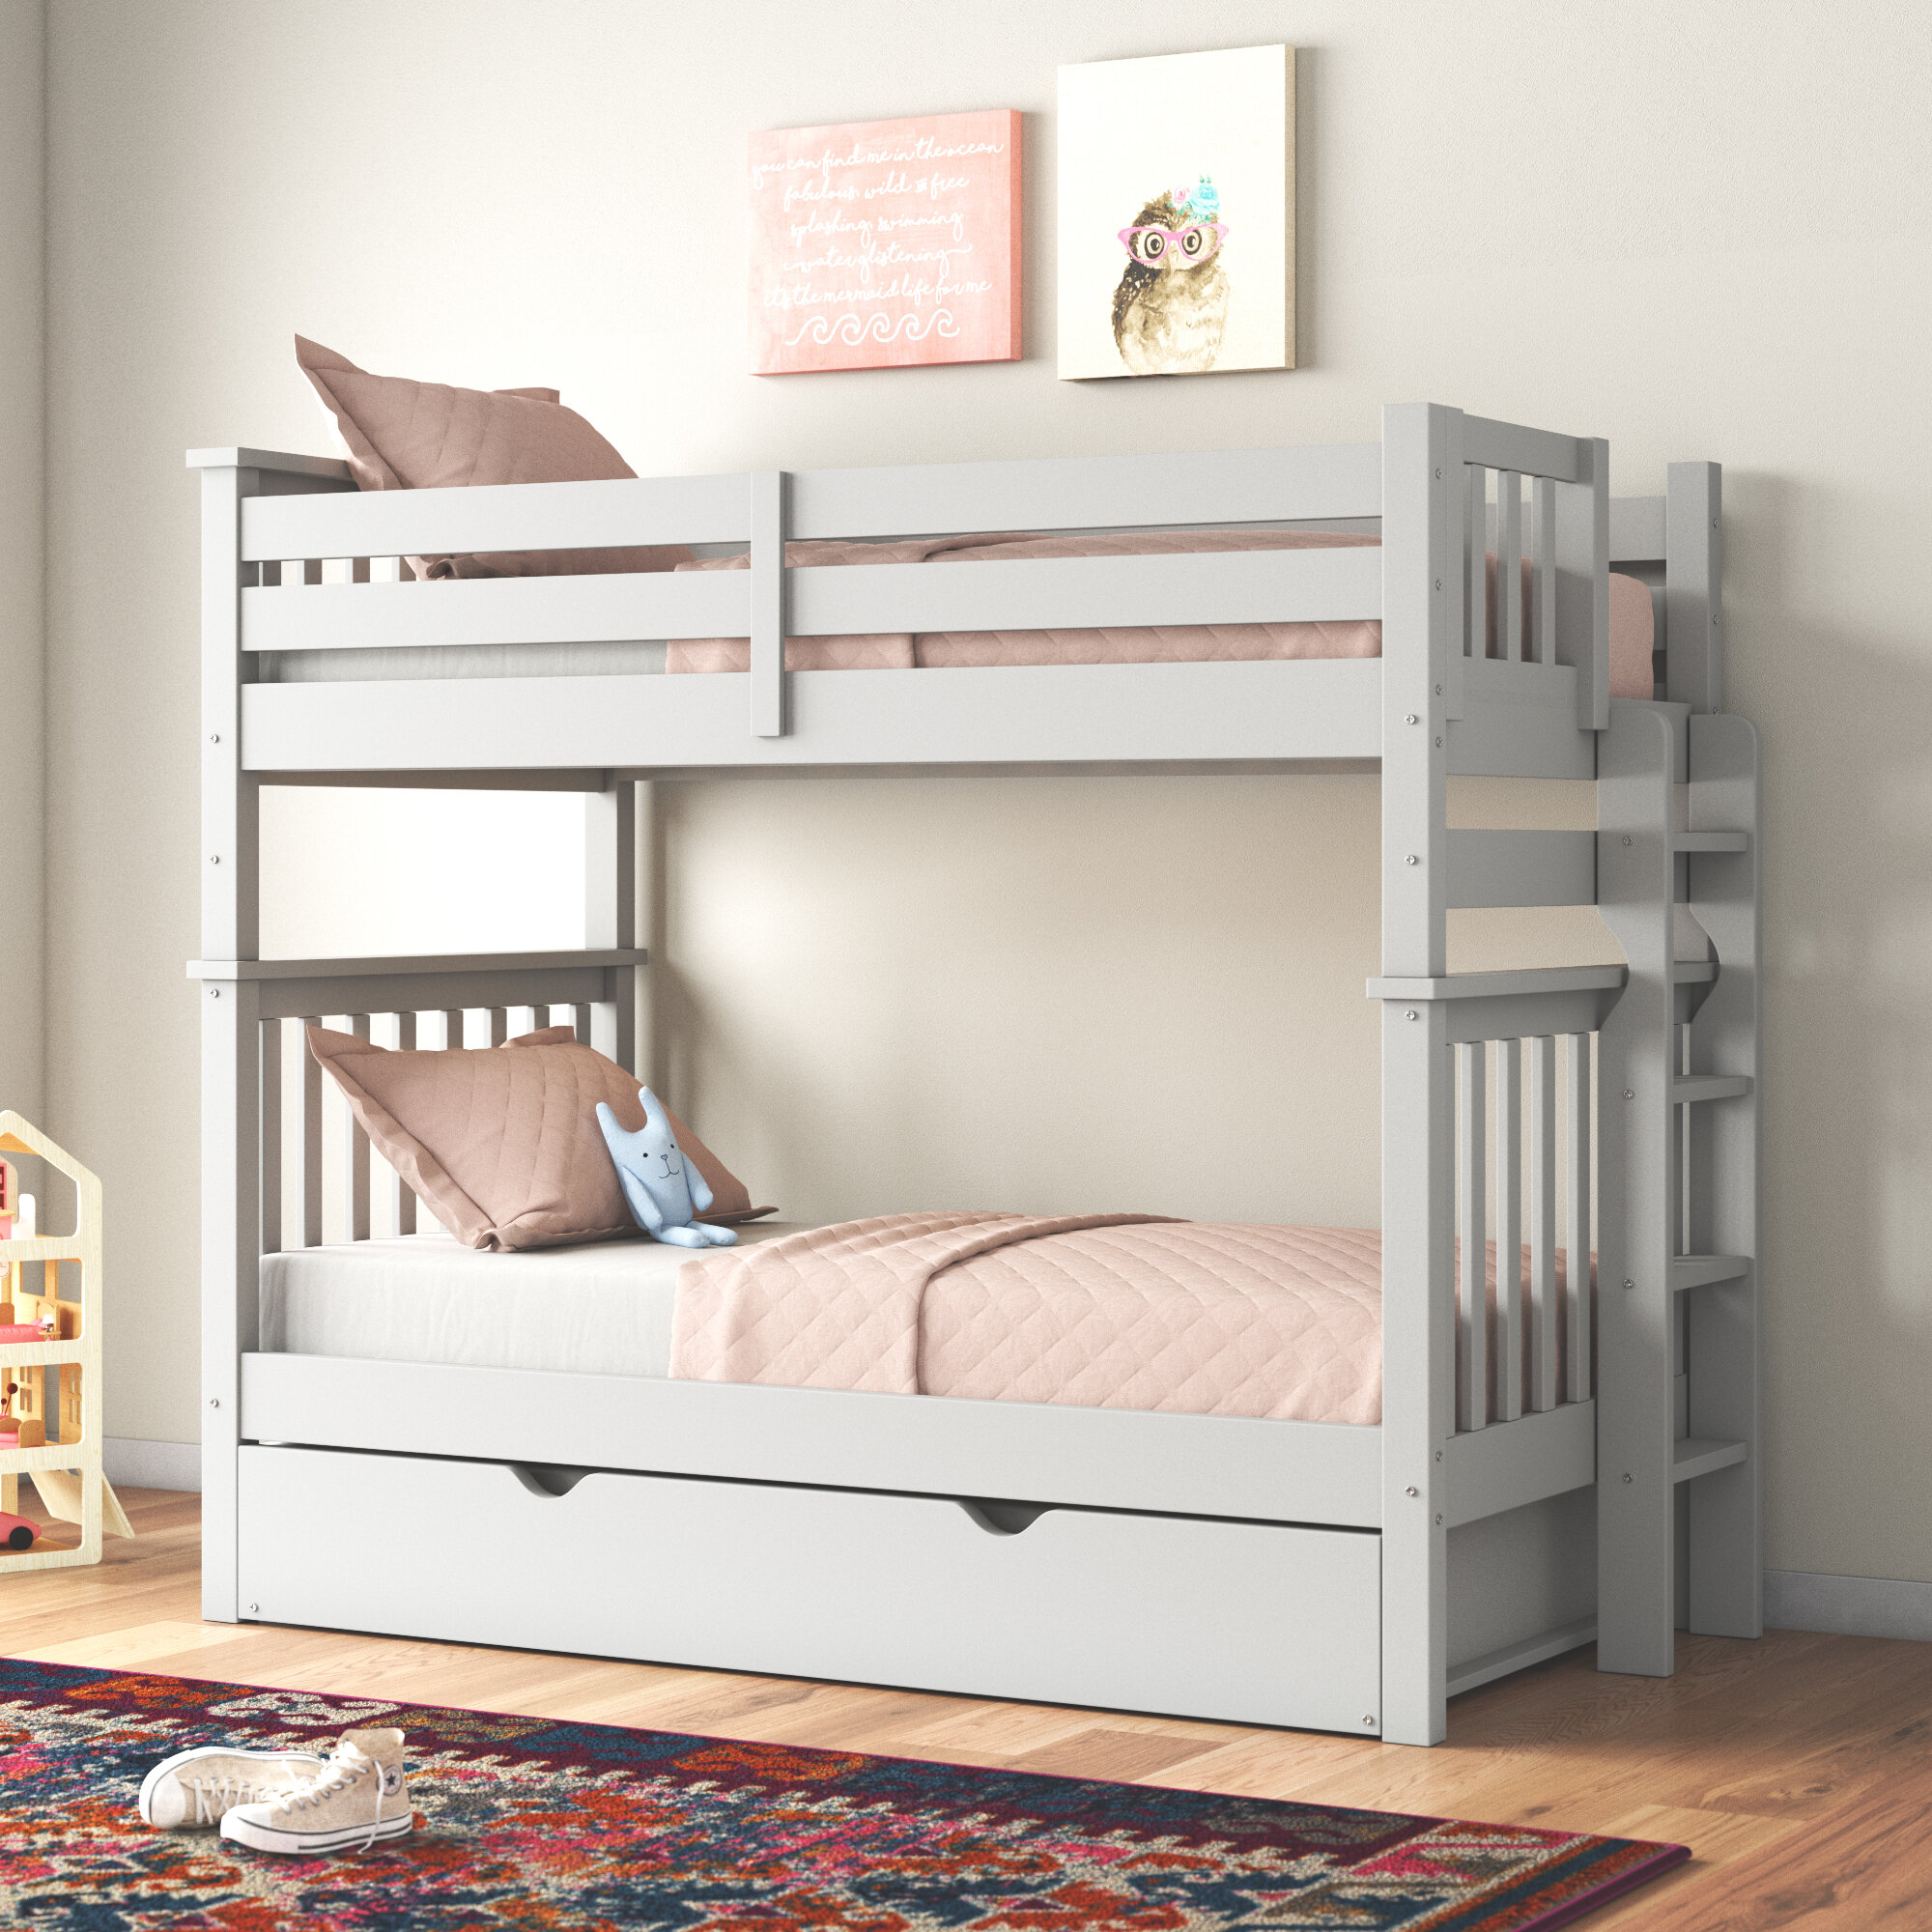 Harriet Bee Treva Tall Twin over Twin Bunk Bed with Trundle